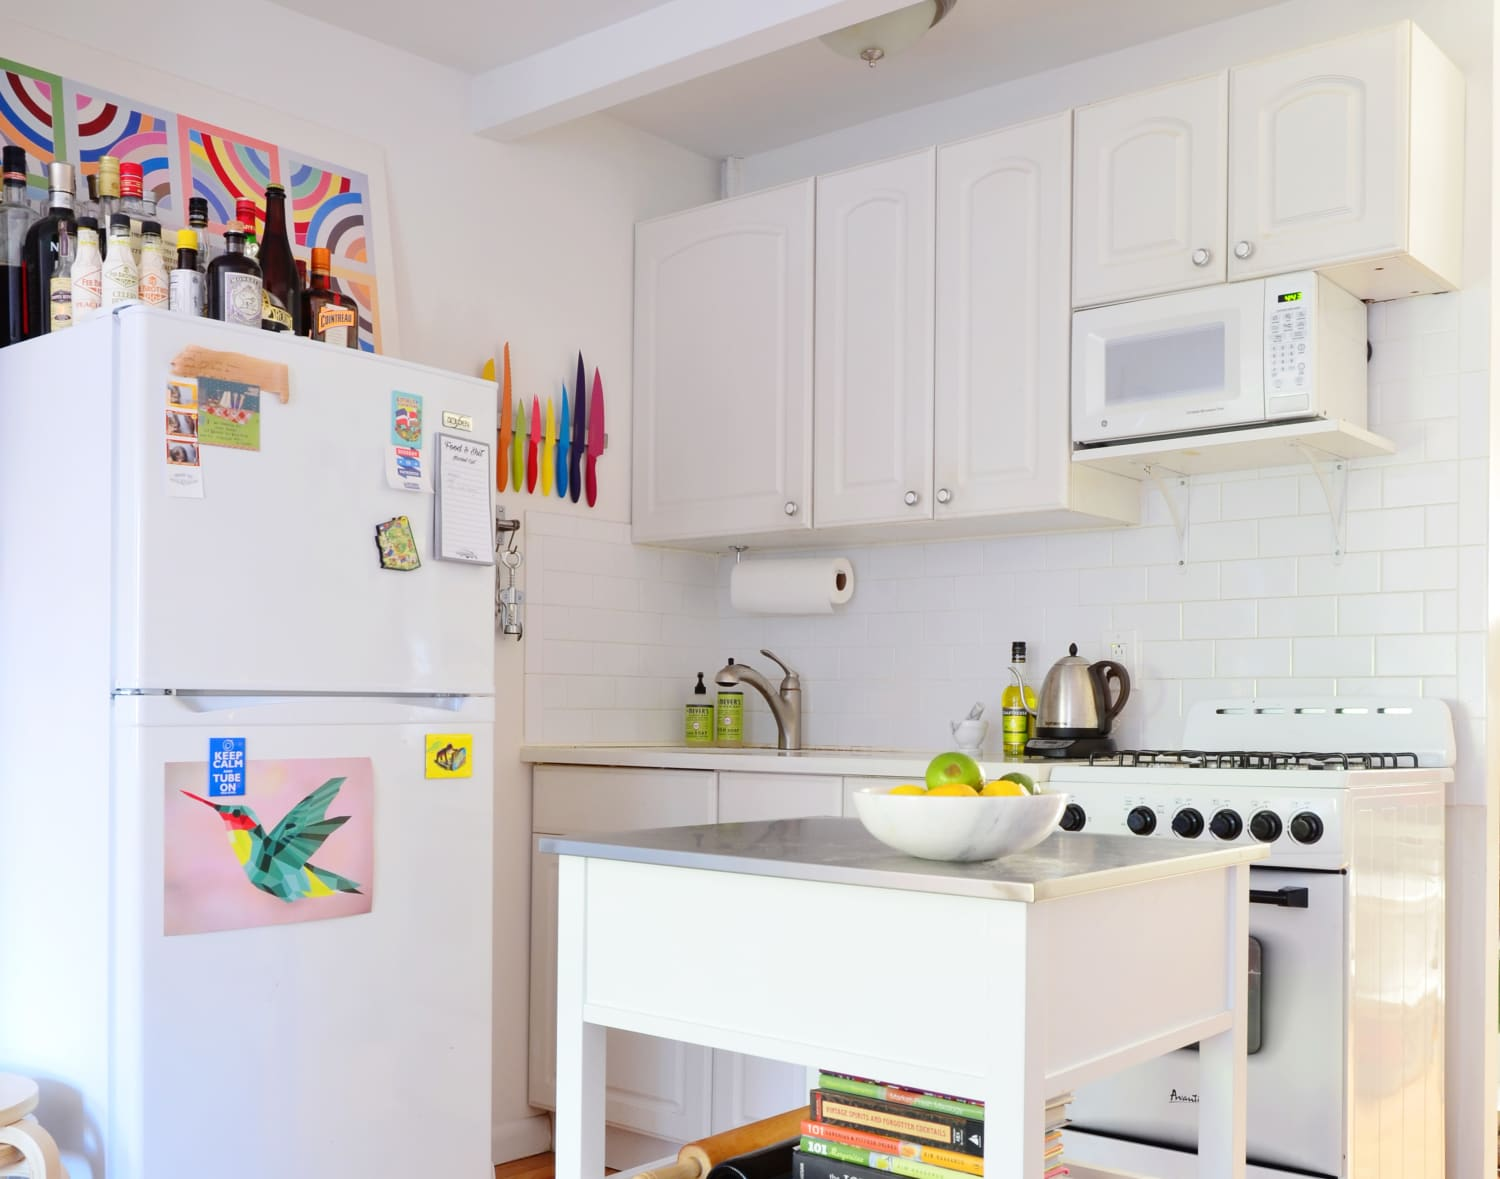 10 Organizers That Basically Create Storage Space Out of Nothing